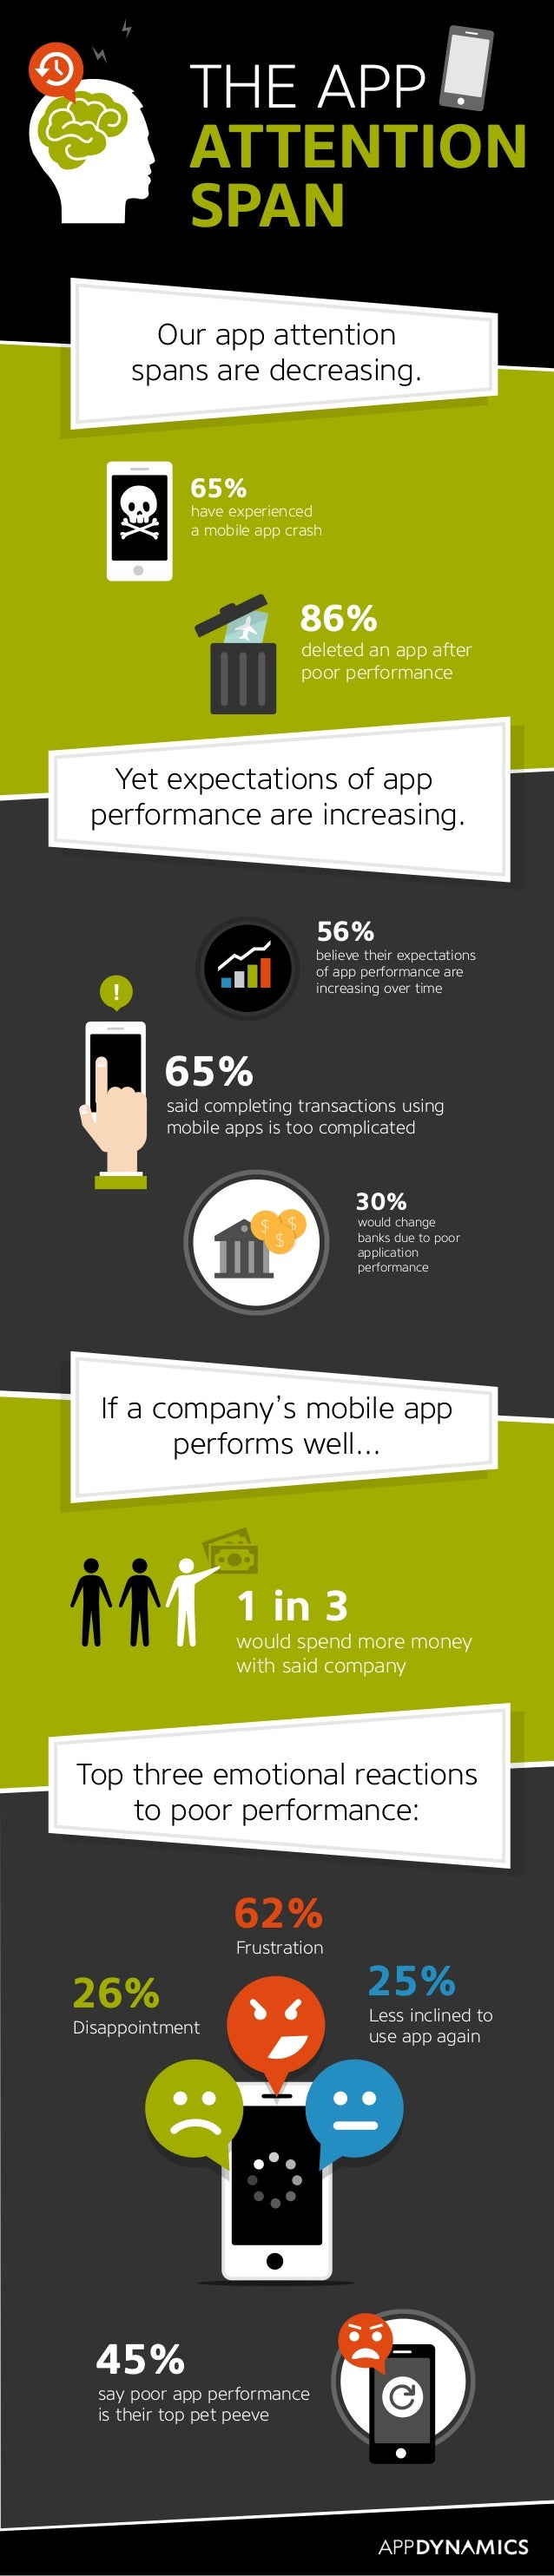 65% have experienced a mobile app crash 86% deleted an app after poor performance 65% said completing transactions using m...